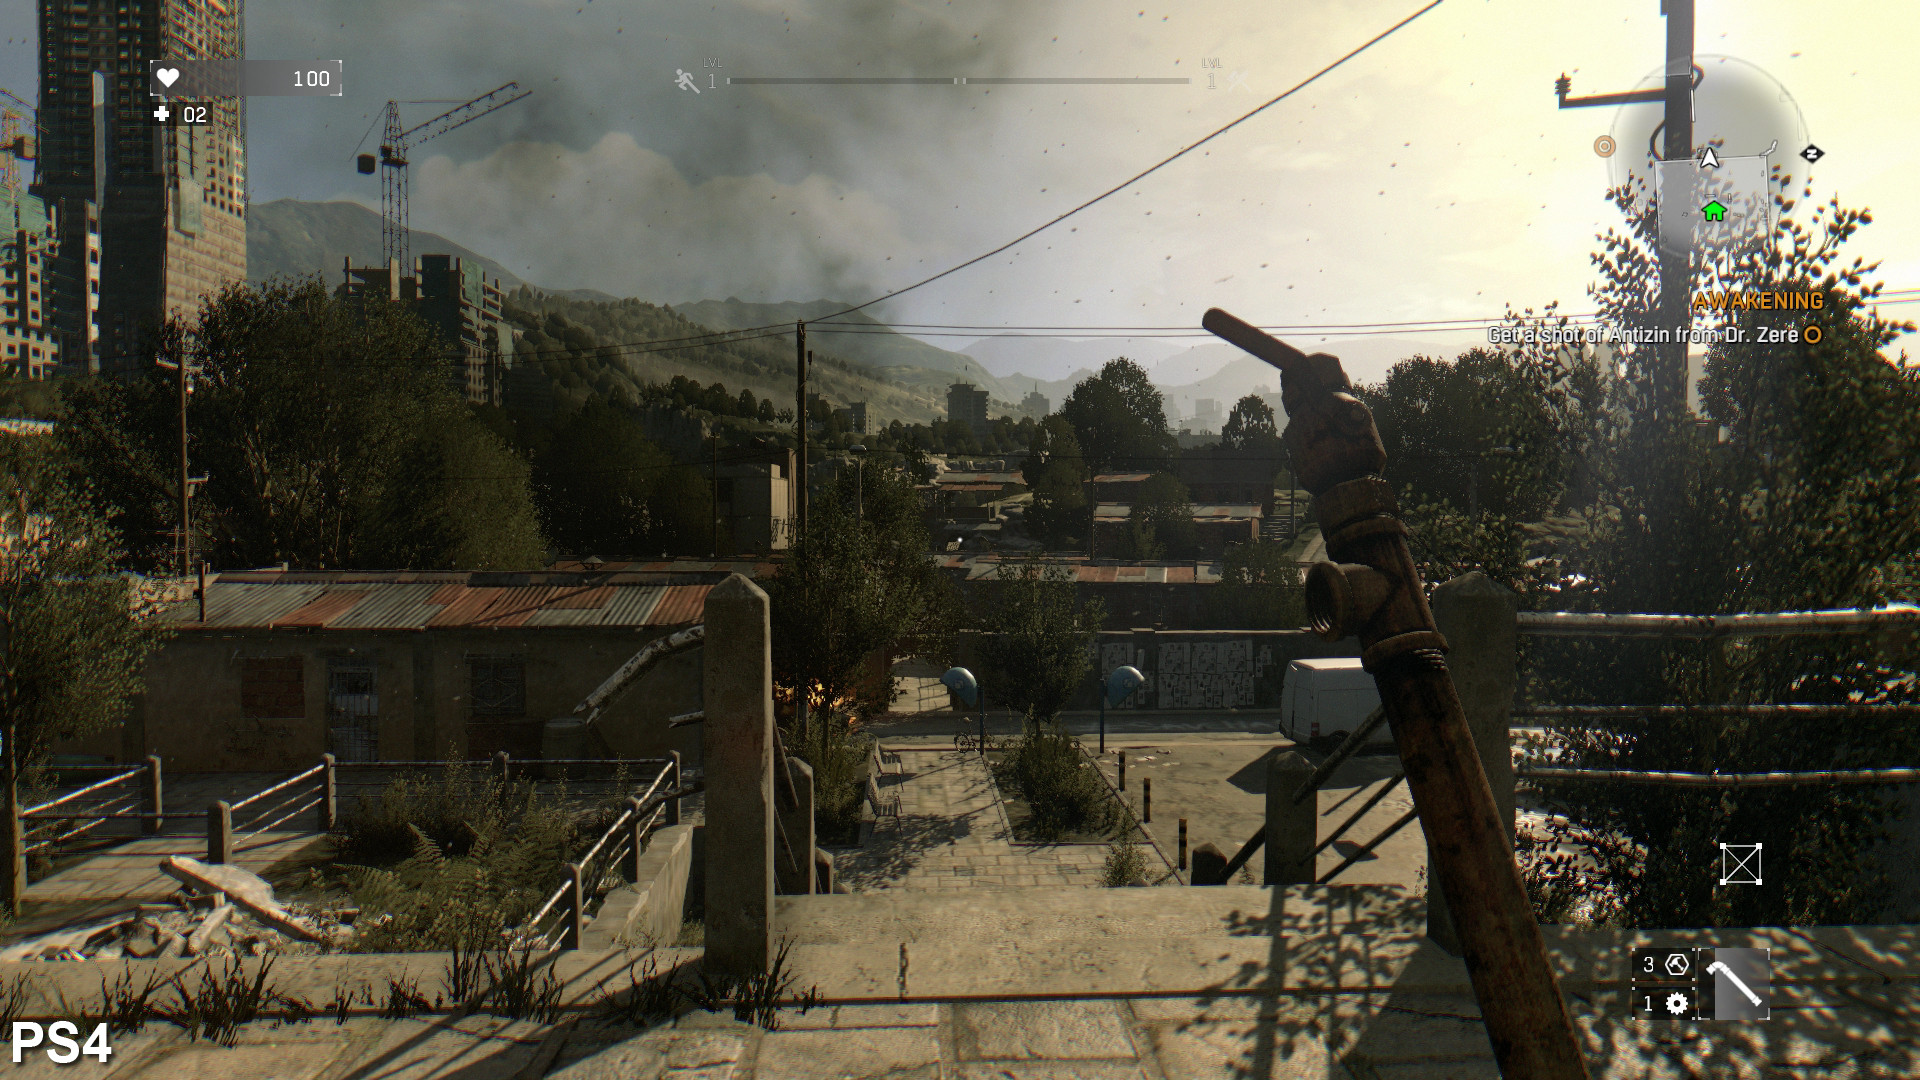 Dying Light Graphics Improved In Latest Update The PS4